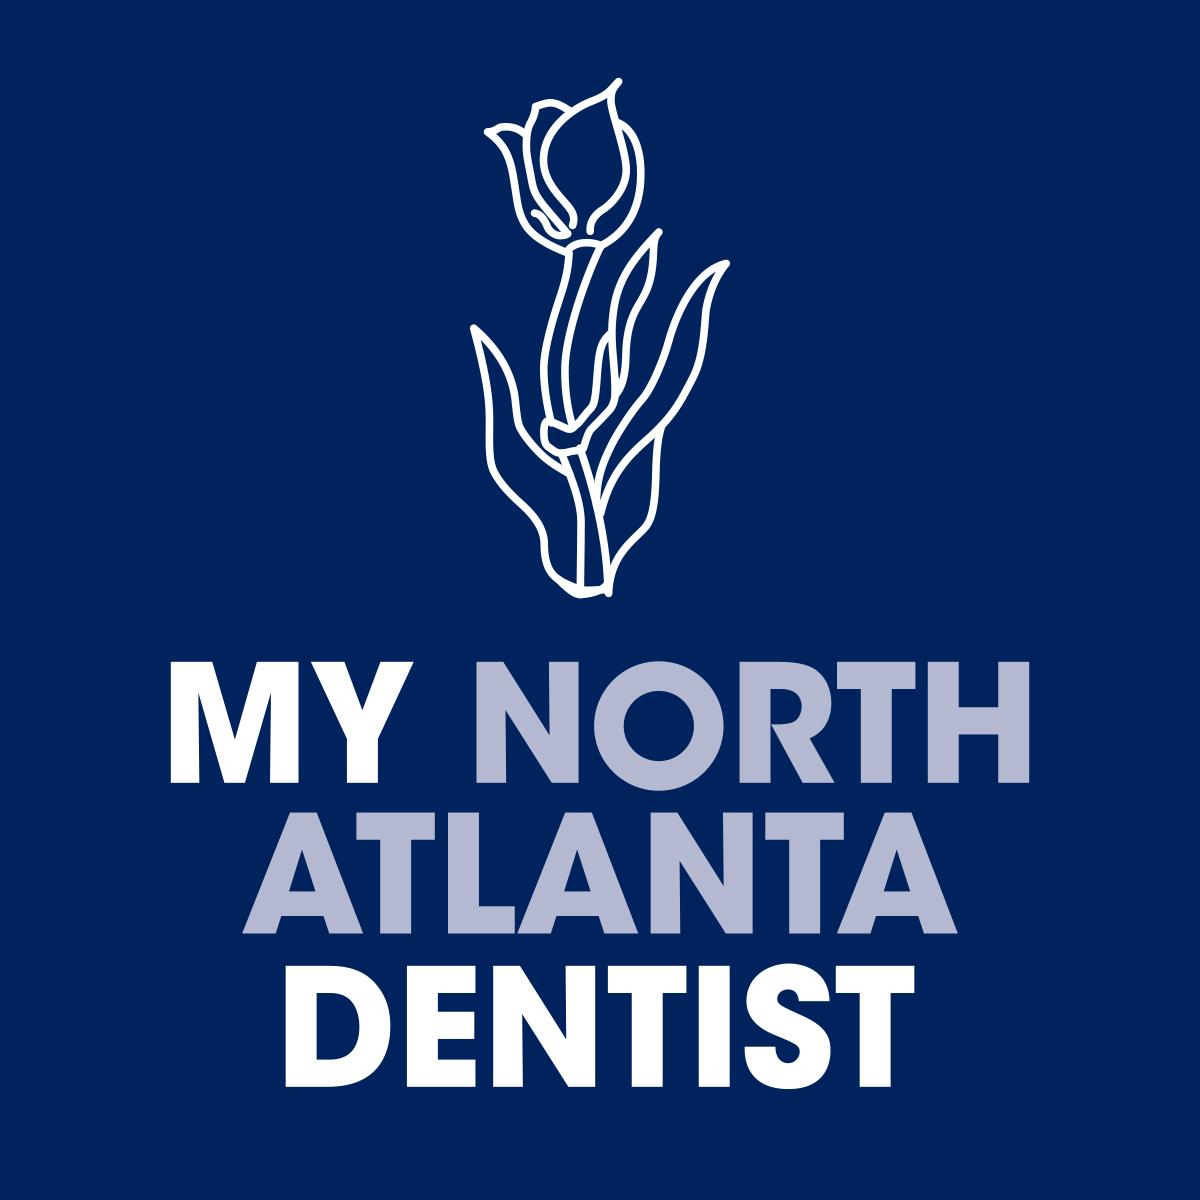 My North Atlanta Dentist